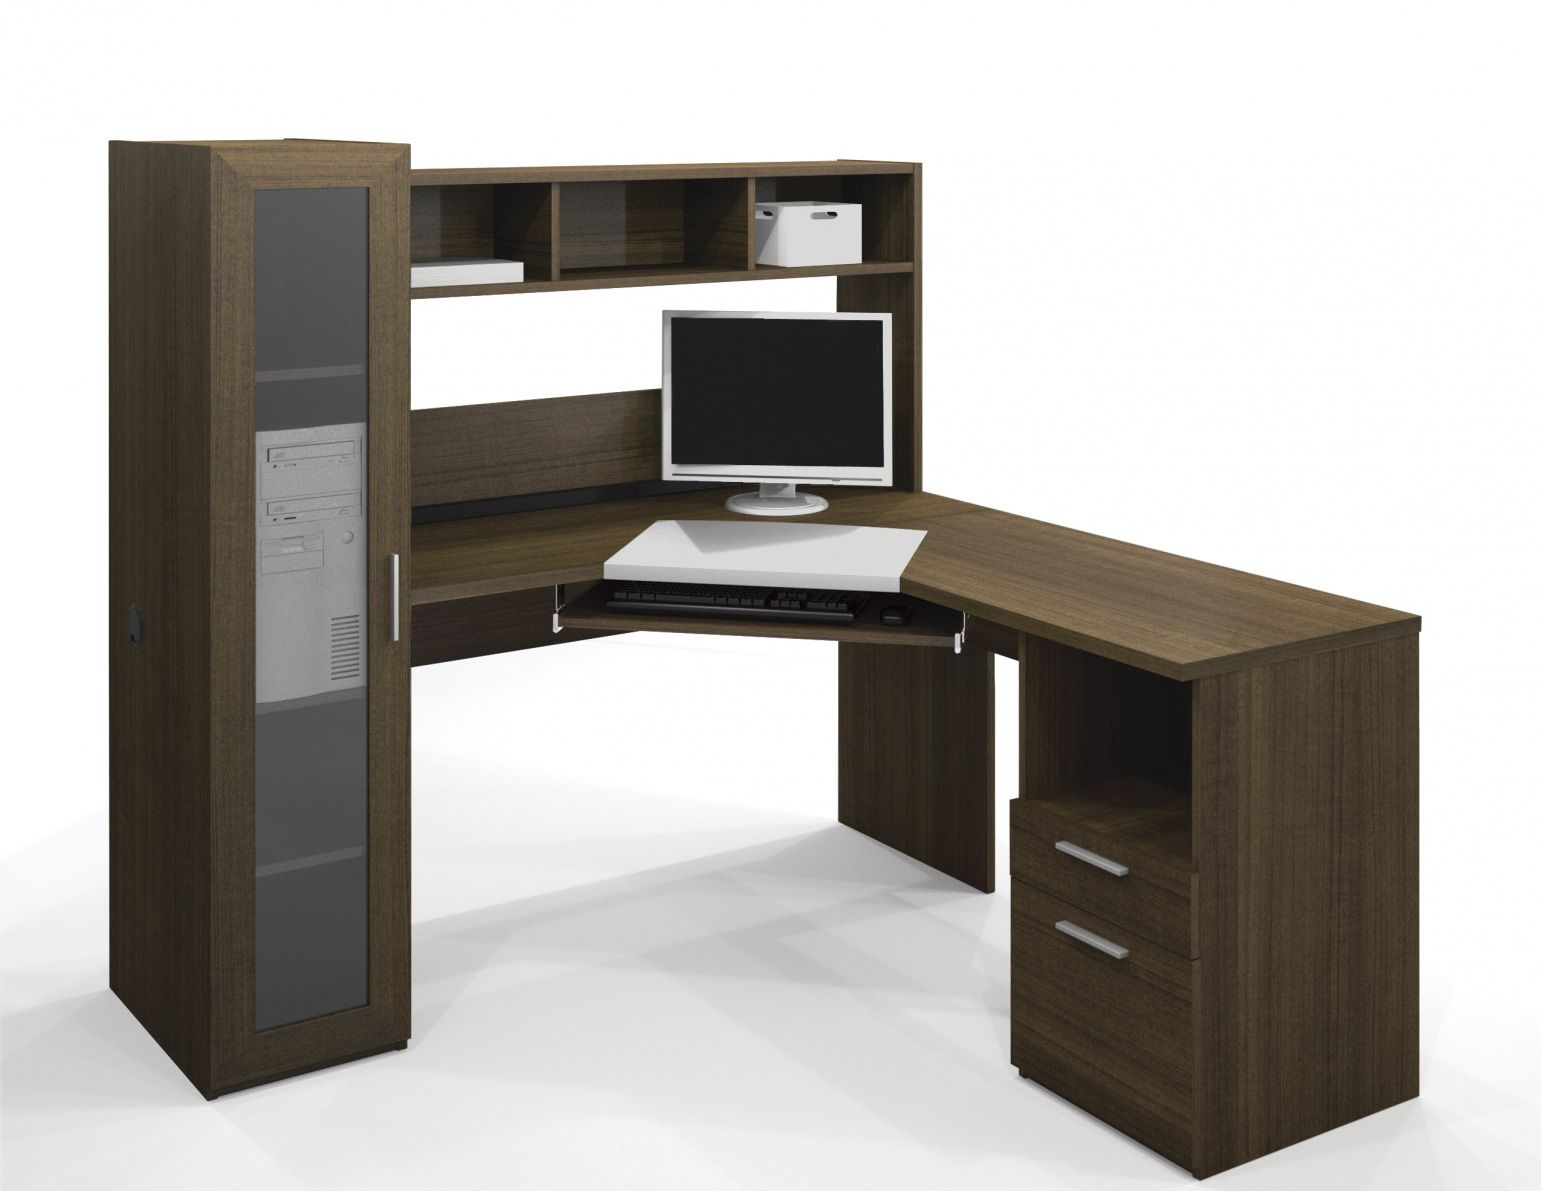 Pin By Erlangfahresi On Desk Office Design Corner